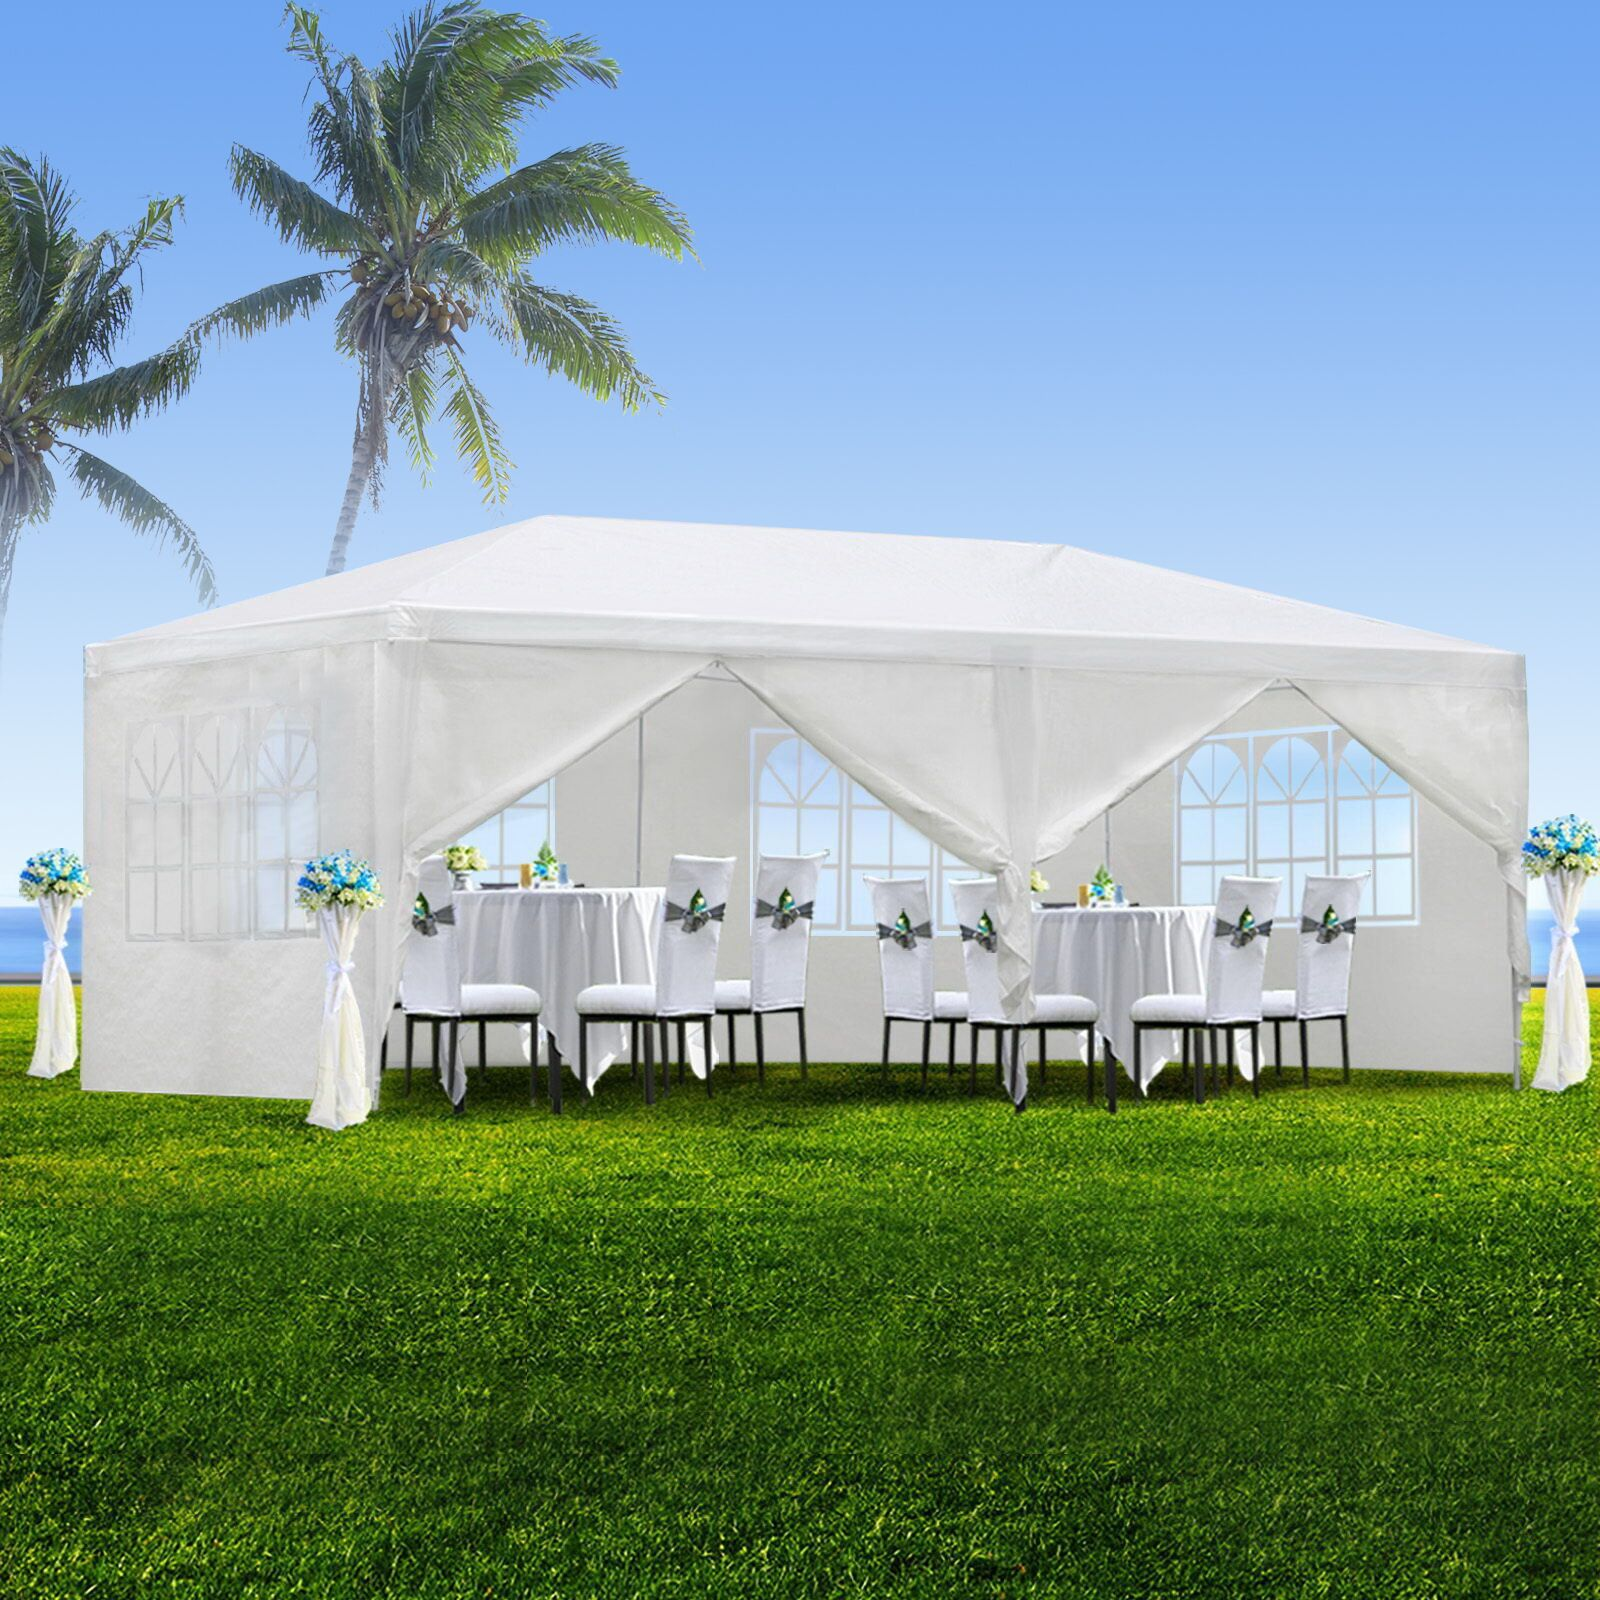 Zeny 10u0027x20u0027 Outdoor Canopy Party Wedding Tent White Gazebo Pavilion w/6 : cheap outdoor canopy tents - afamca.org